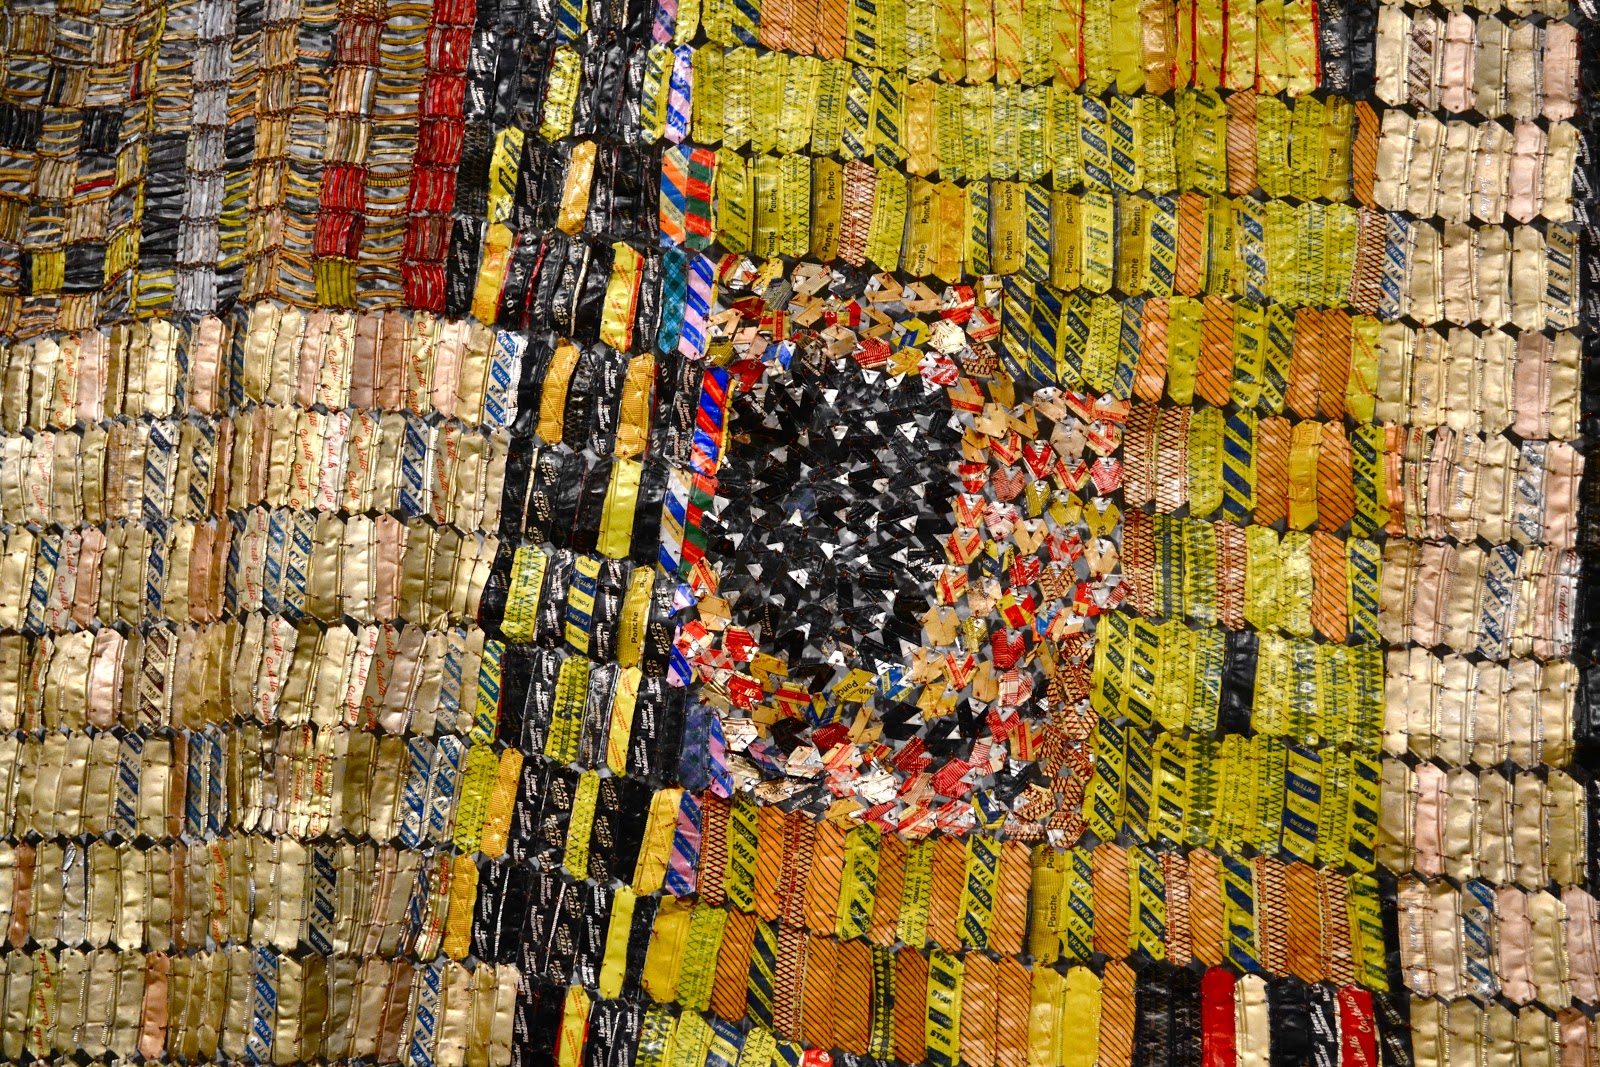 el anatsui inspired artwork But these magnificent works are mere introductions to the oversized mixed-media sculptural installations that clearly illustrate el anatsui's genius.